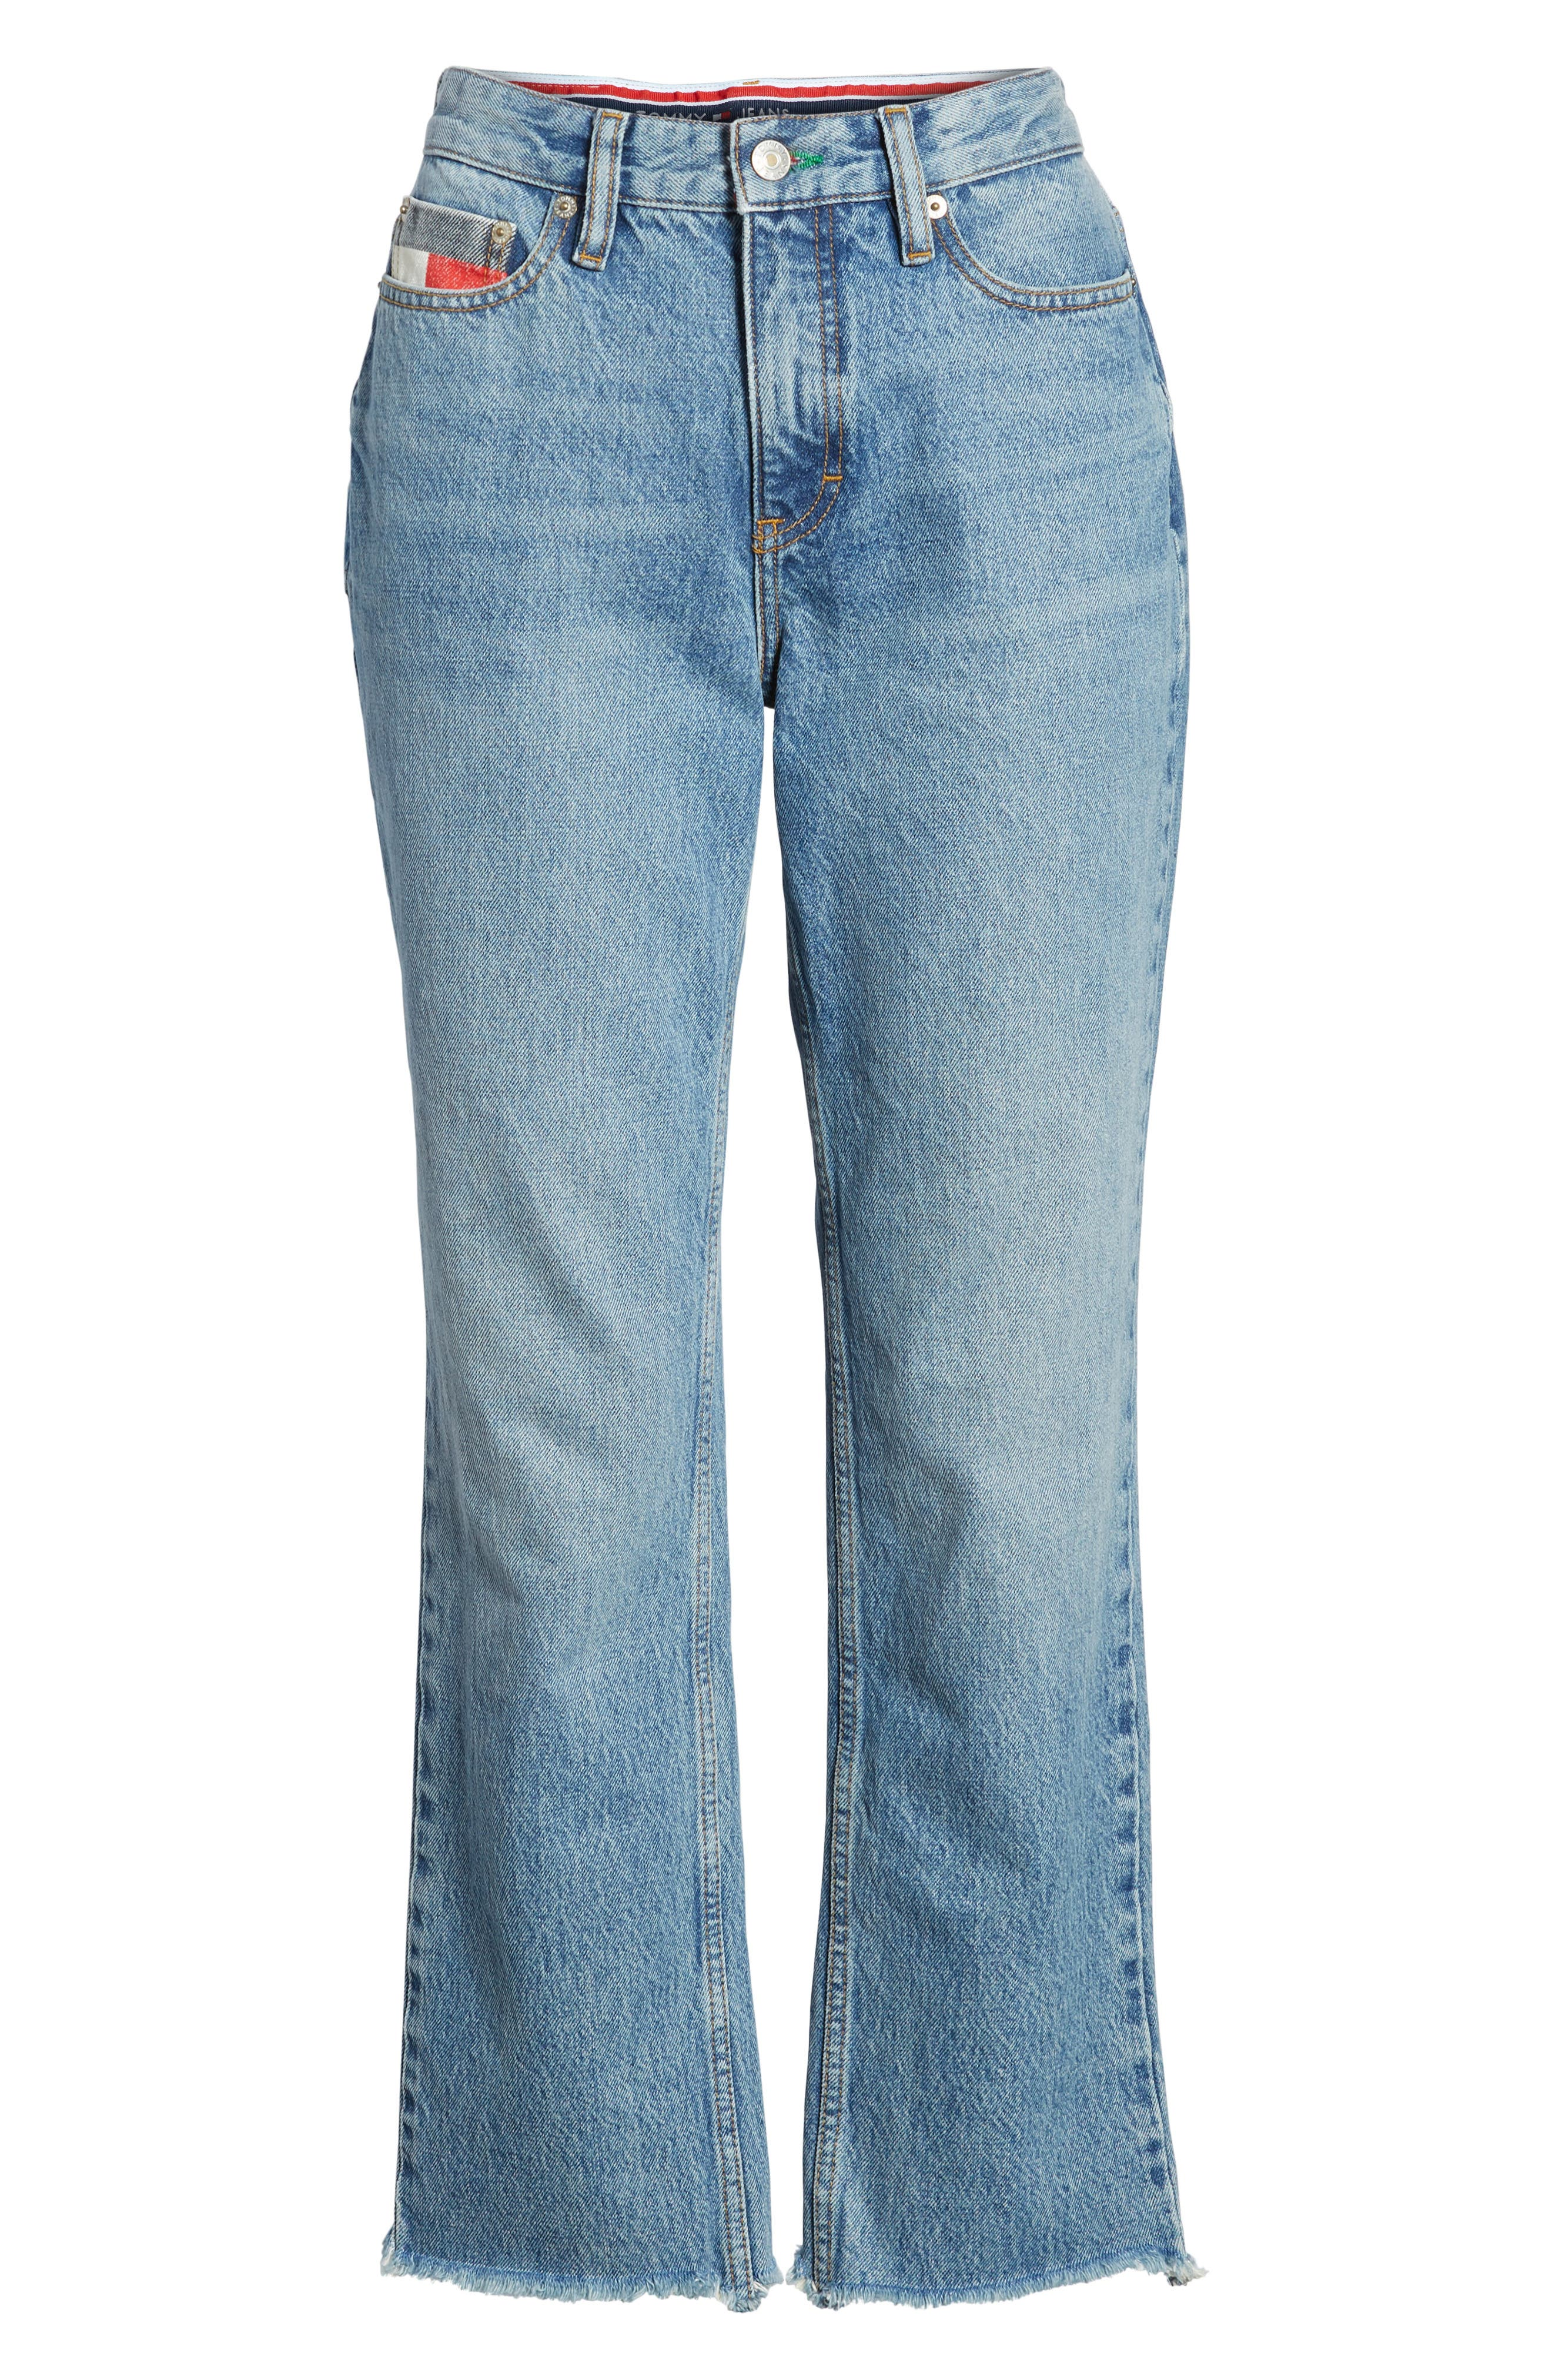 TOMMY JEANS,                             TJW 90s Mom Jeans,                             Alternate thumbnail 7, color,                             401